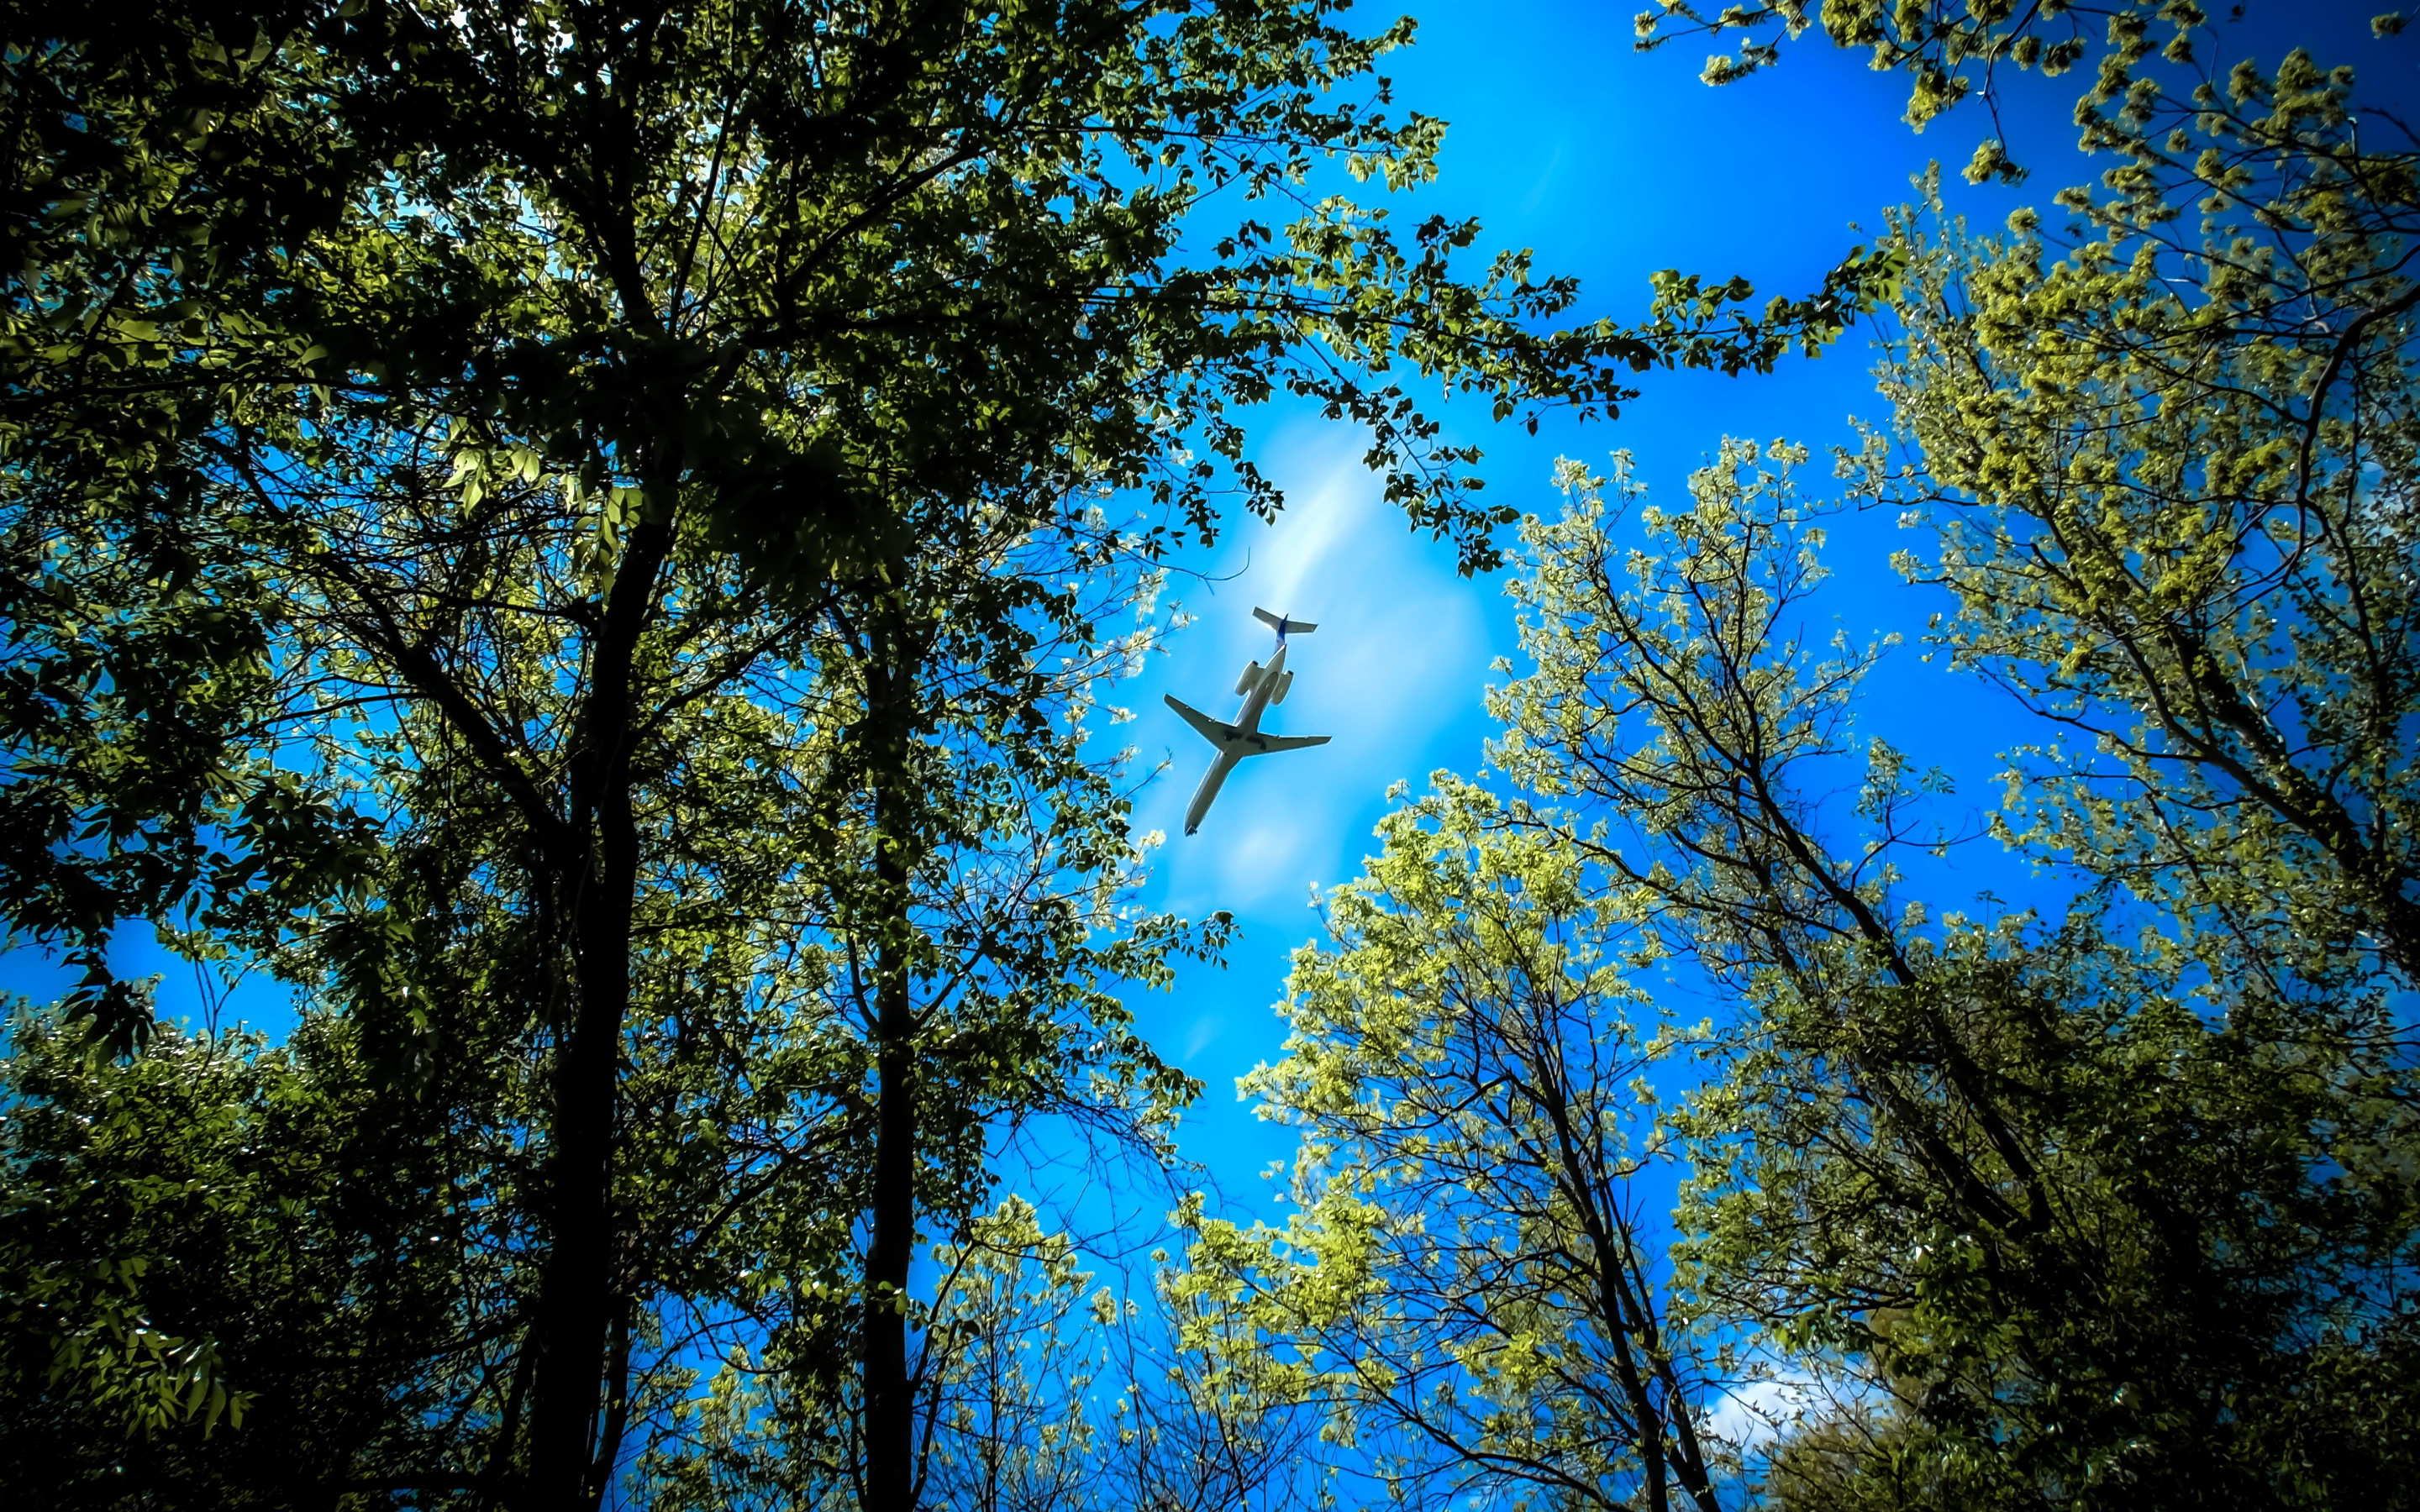 Plane between trees